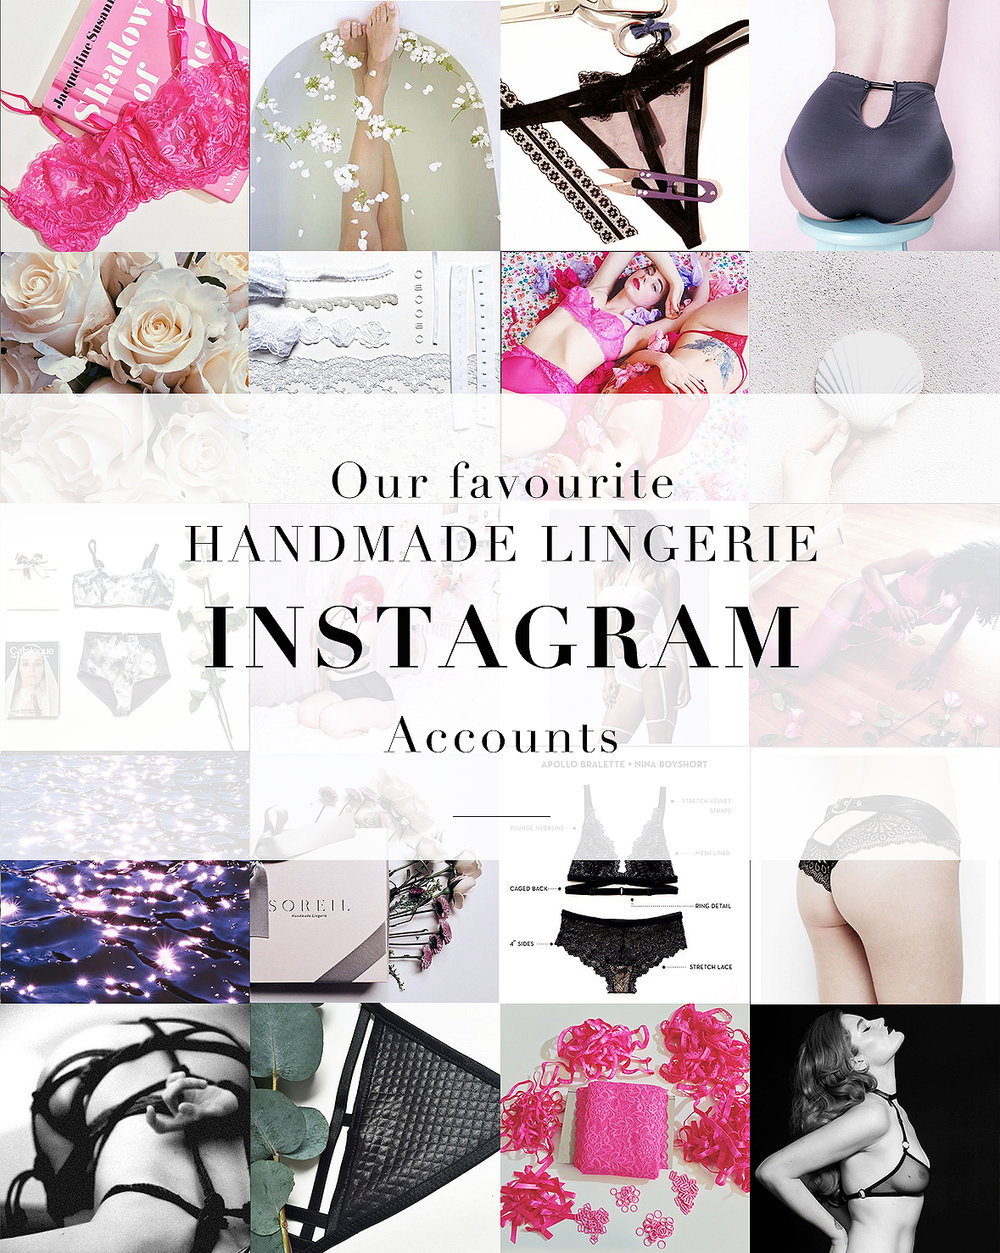 intimates-of-instagram-HANDMADE-LINGERIE-BRANDS-TO-FOLLOW-inspration-01.jpg